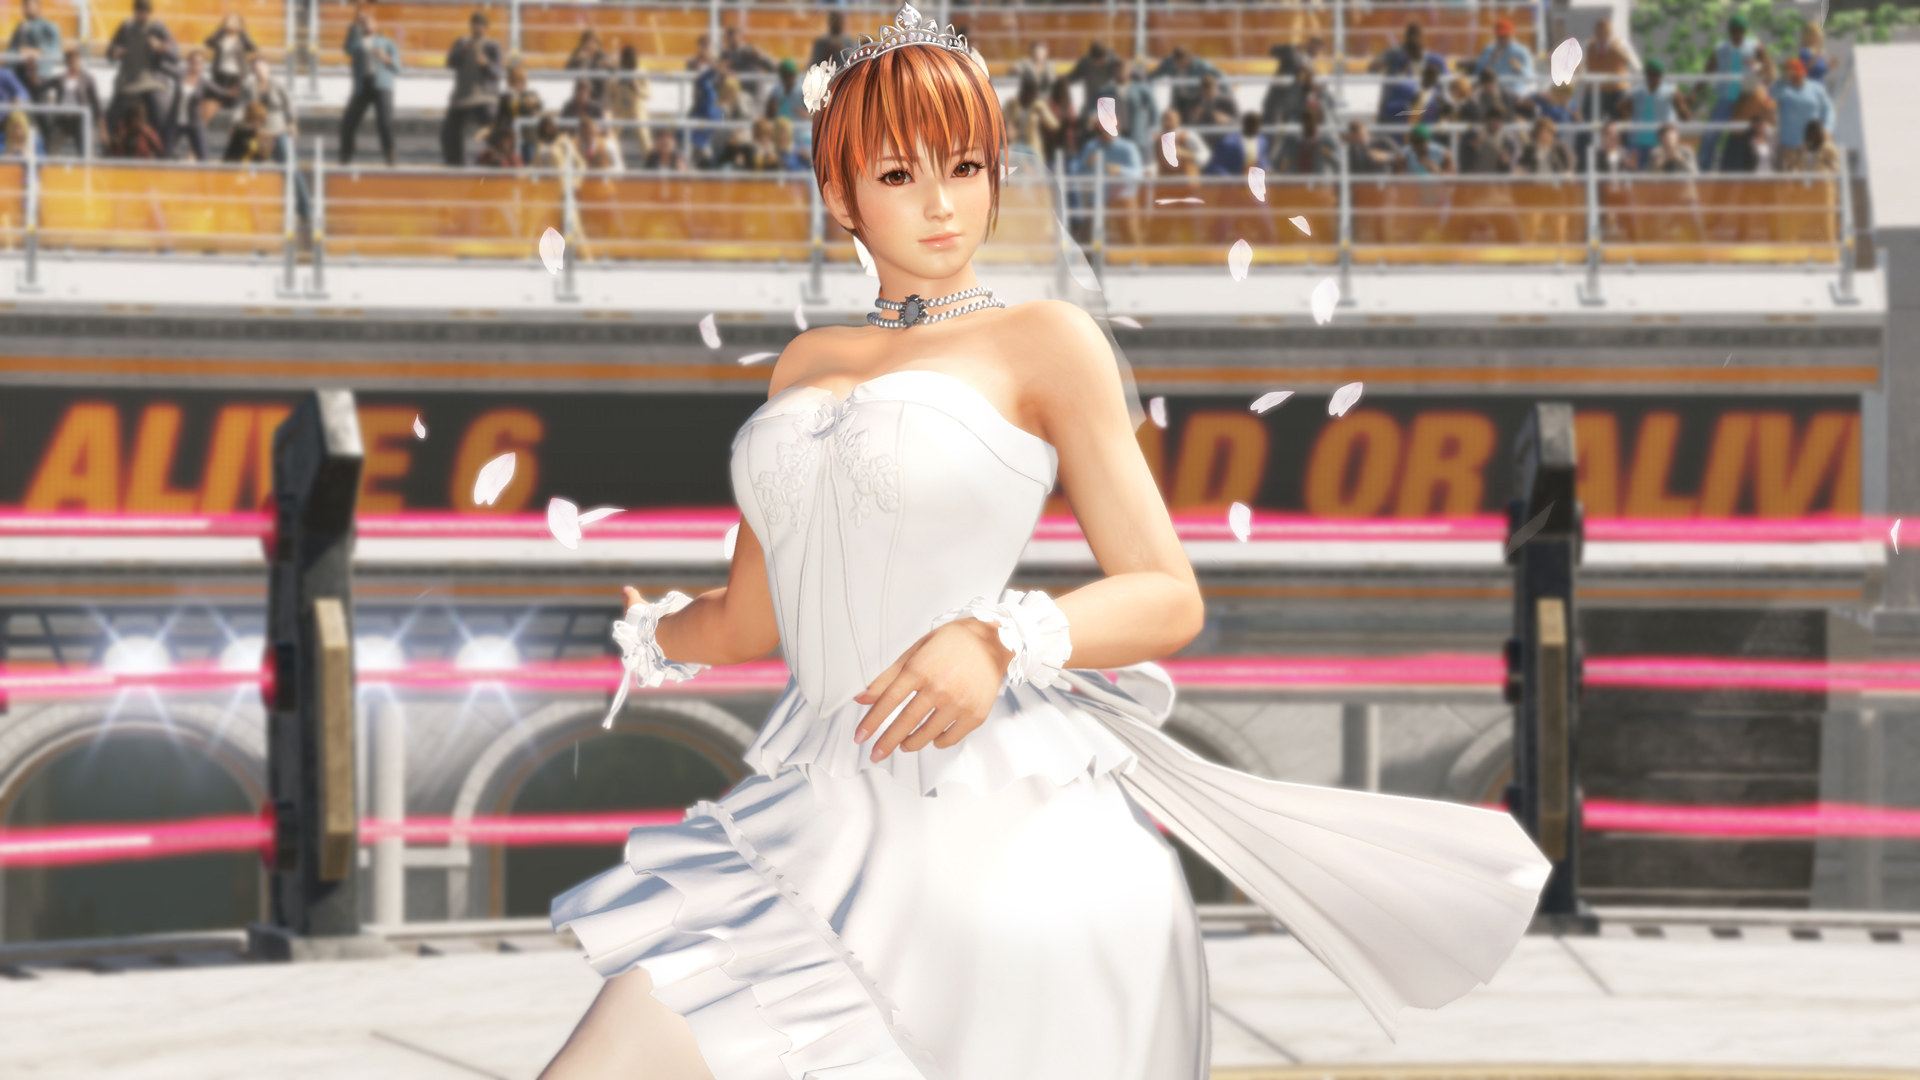 Dead Or Alive 6 Final Dlc To Launch Next Month With Upcoming Patch